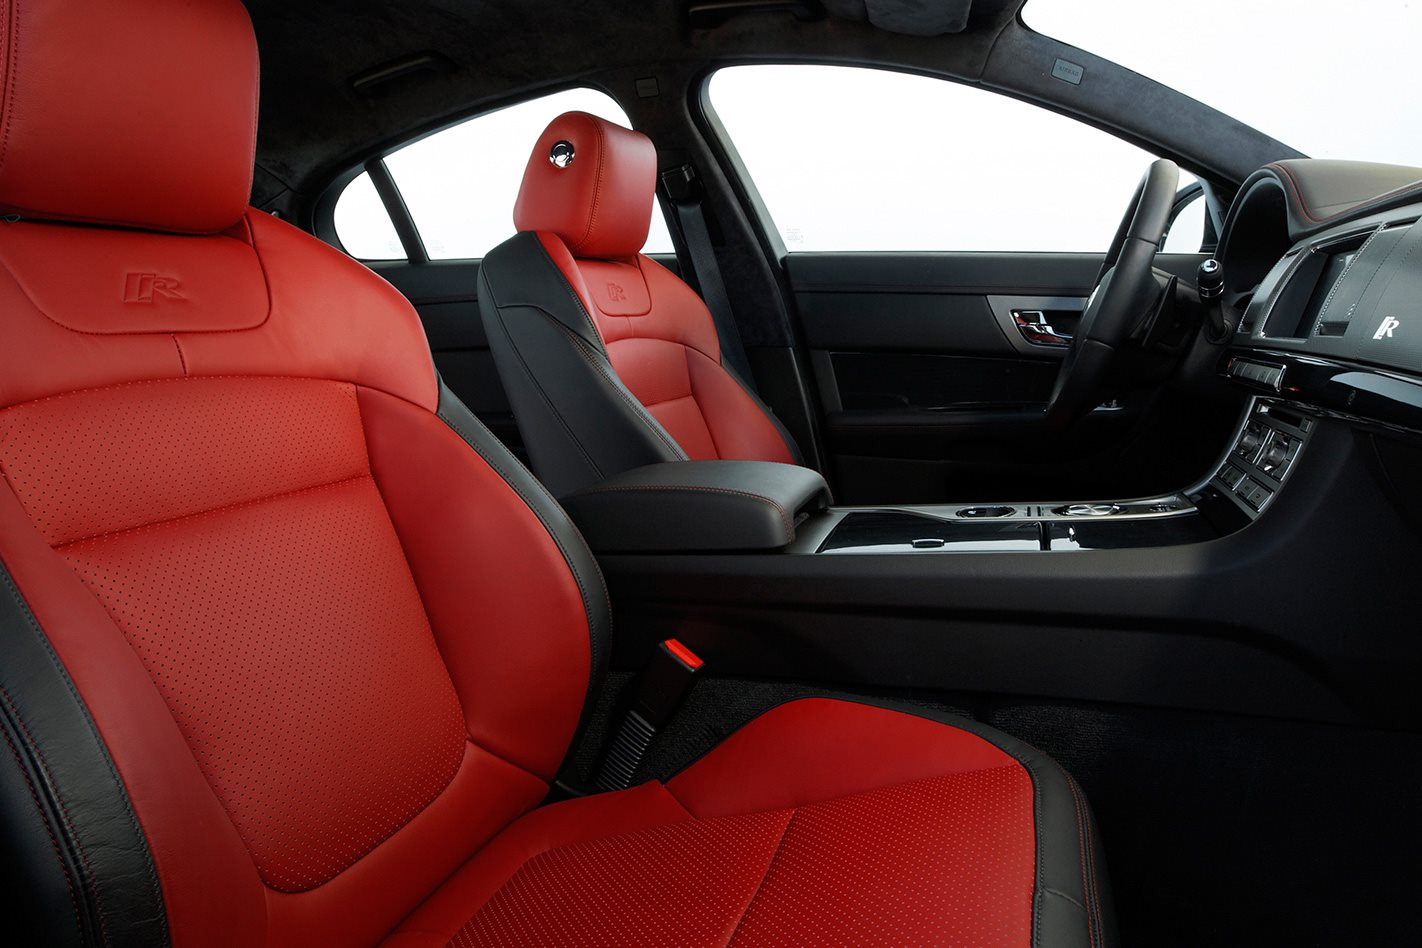 2009 Jaguar XF-R review interior